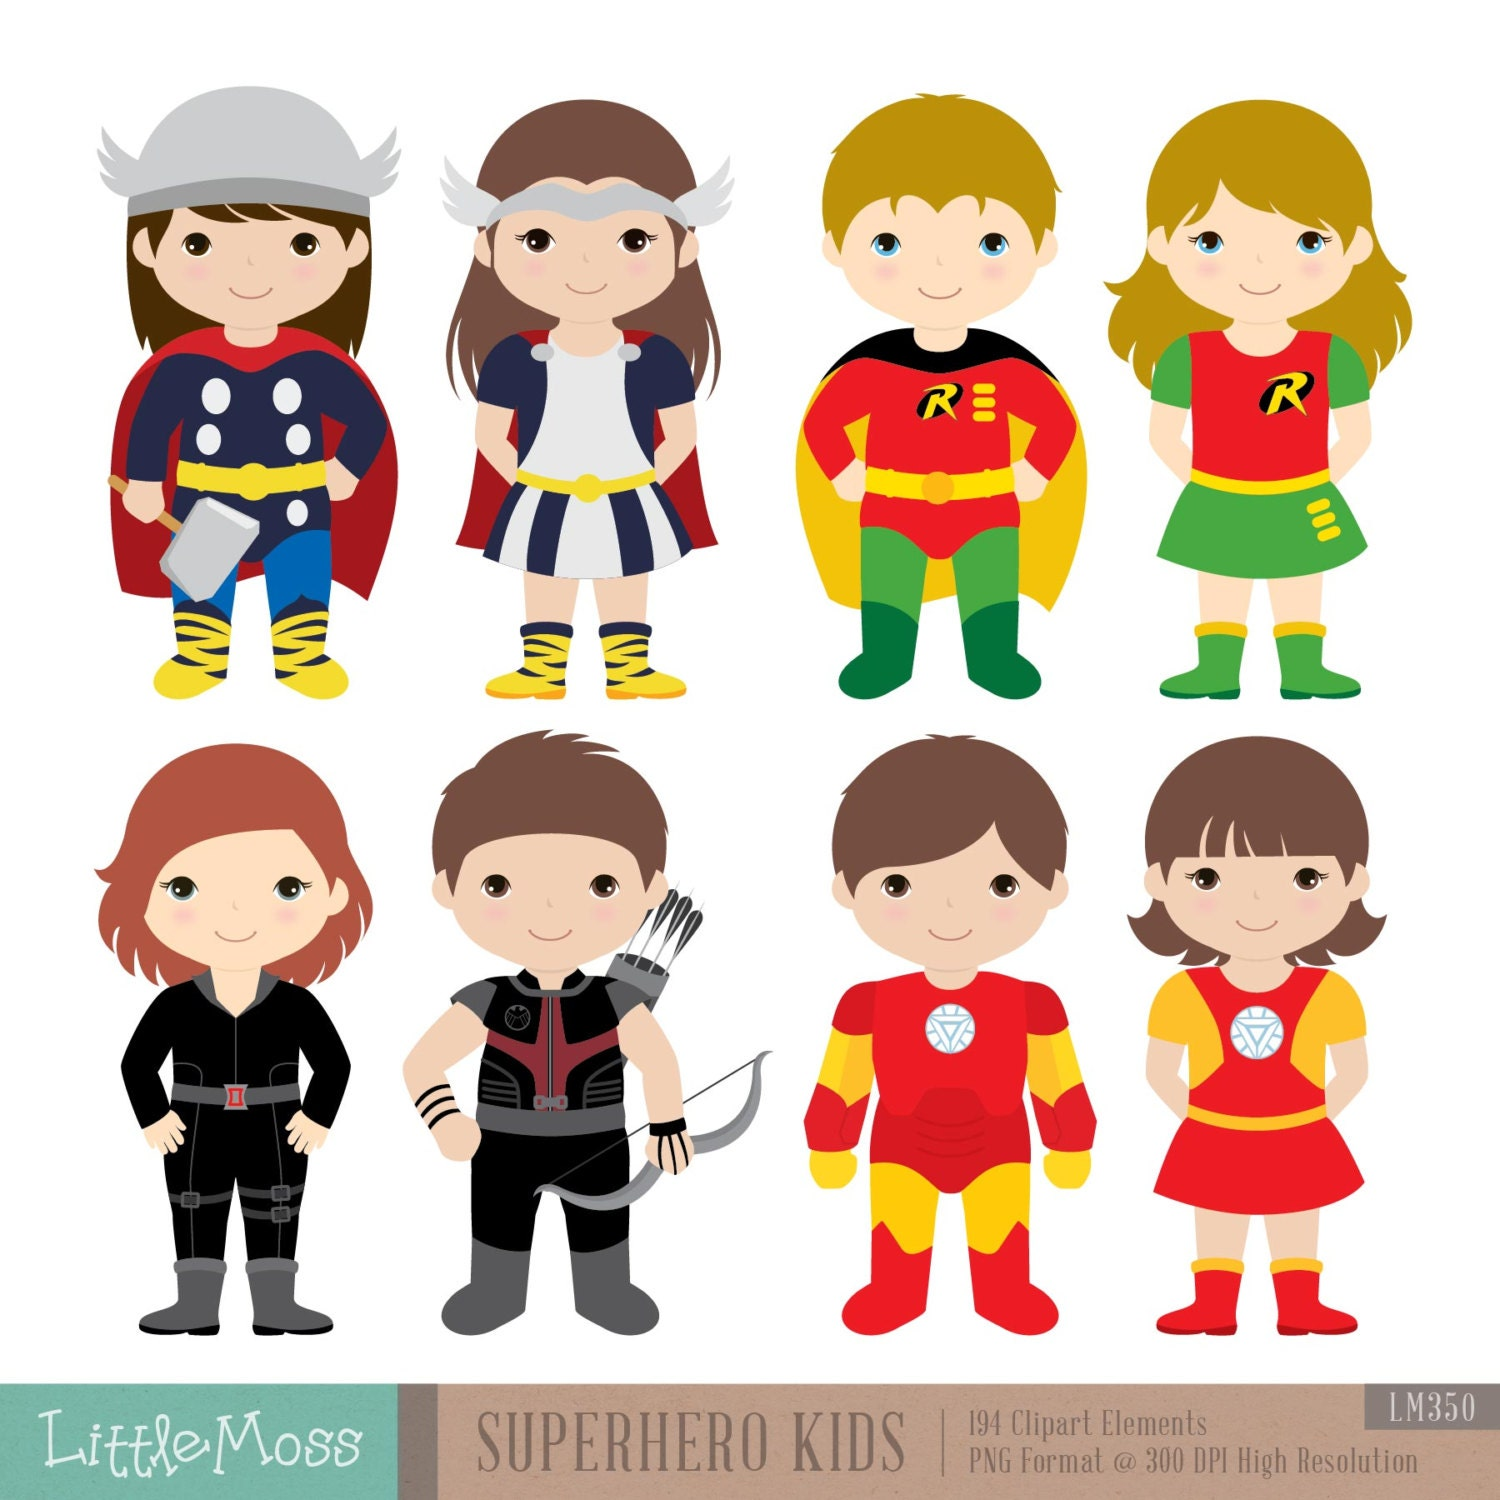 36 Kids Superhero Costumes Clipart Superheroes Kids